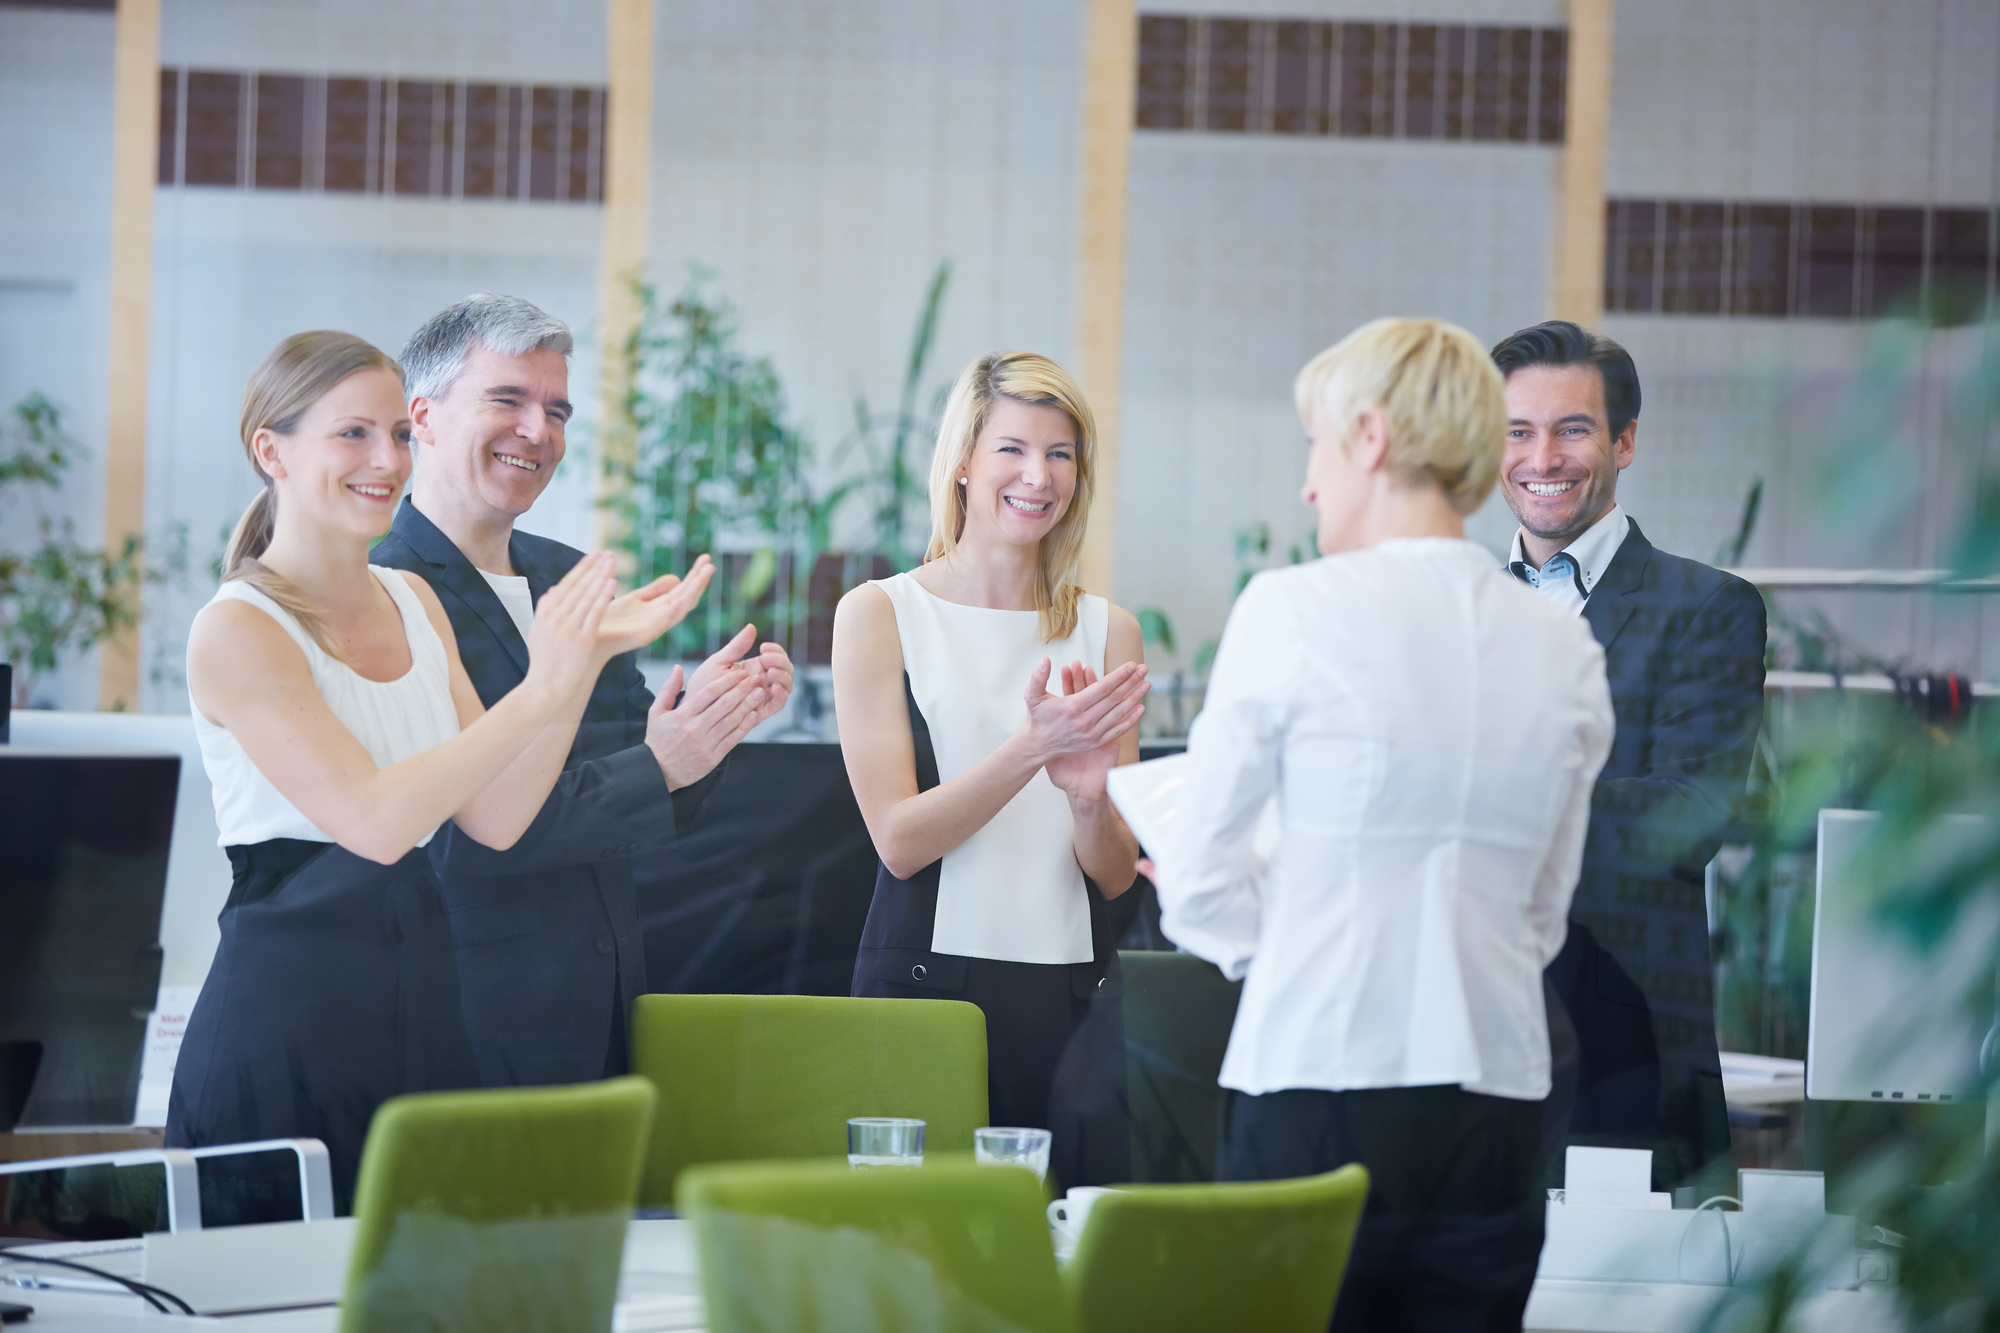 Employee Appreciation Events For Workplace Morale